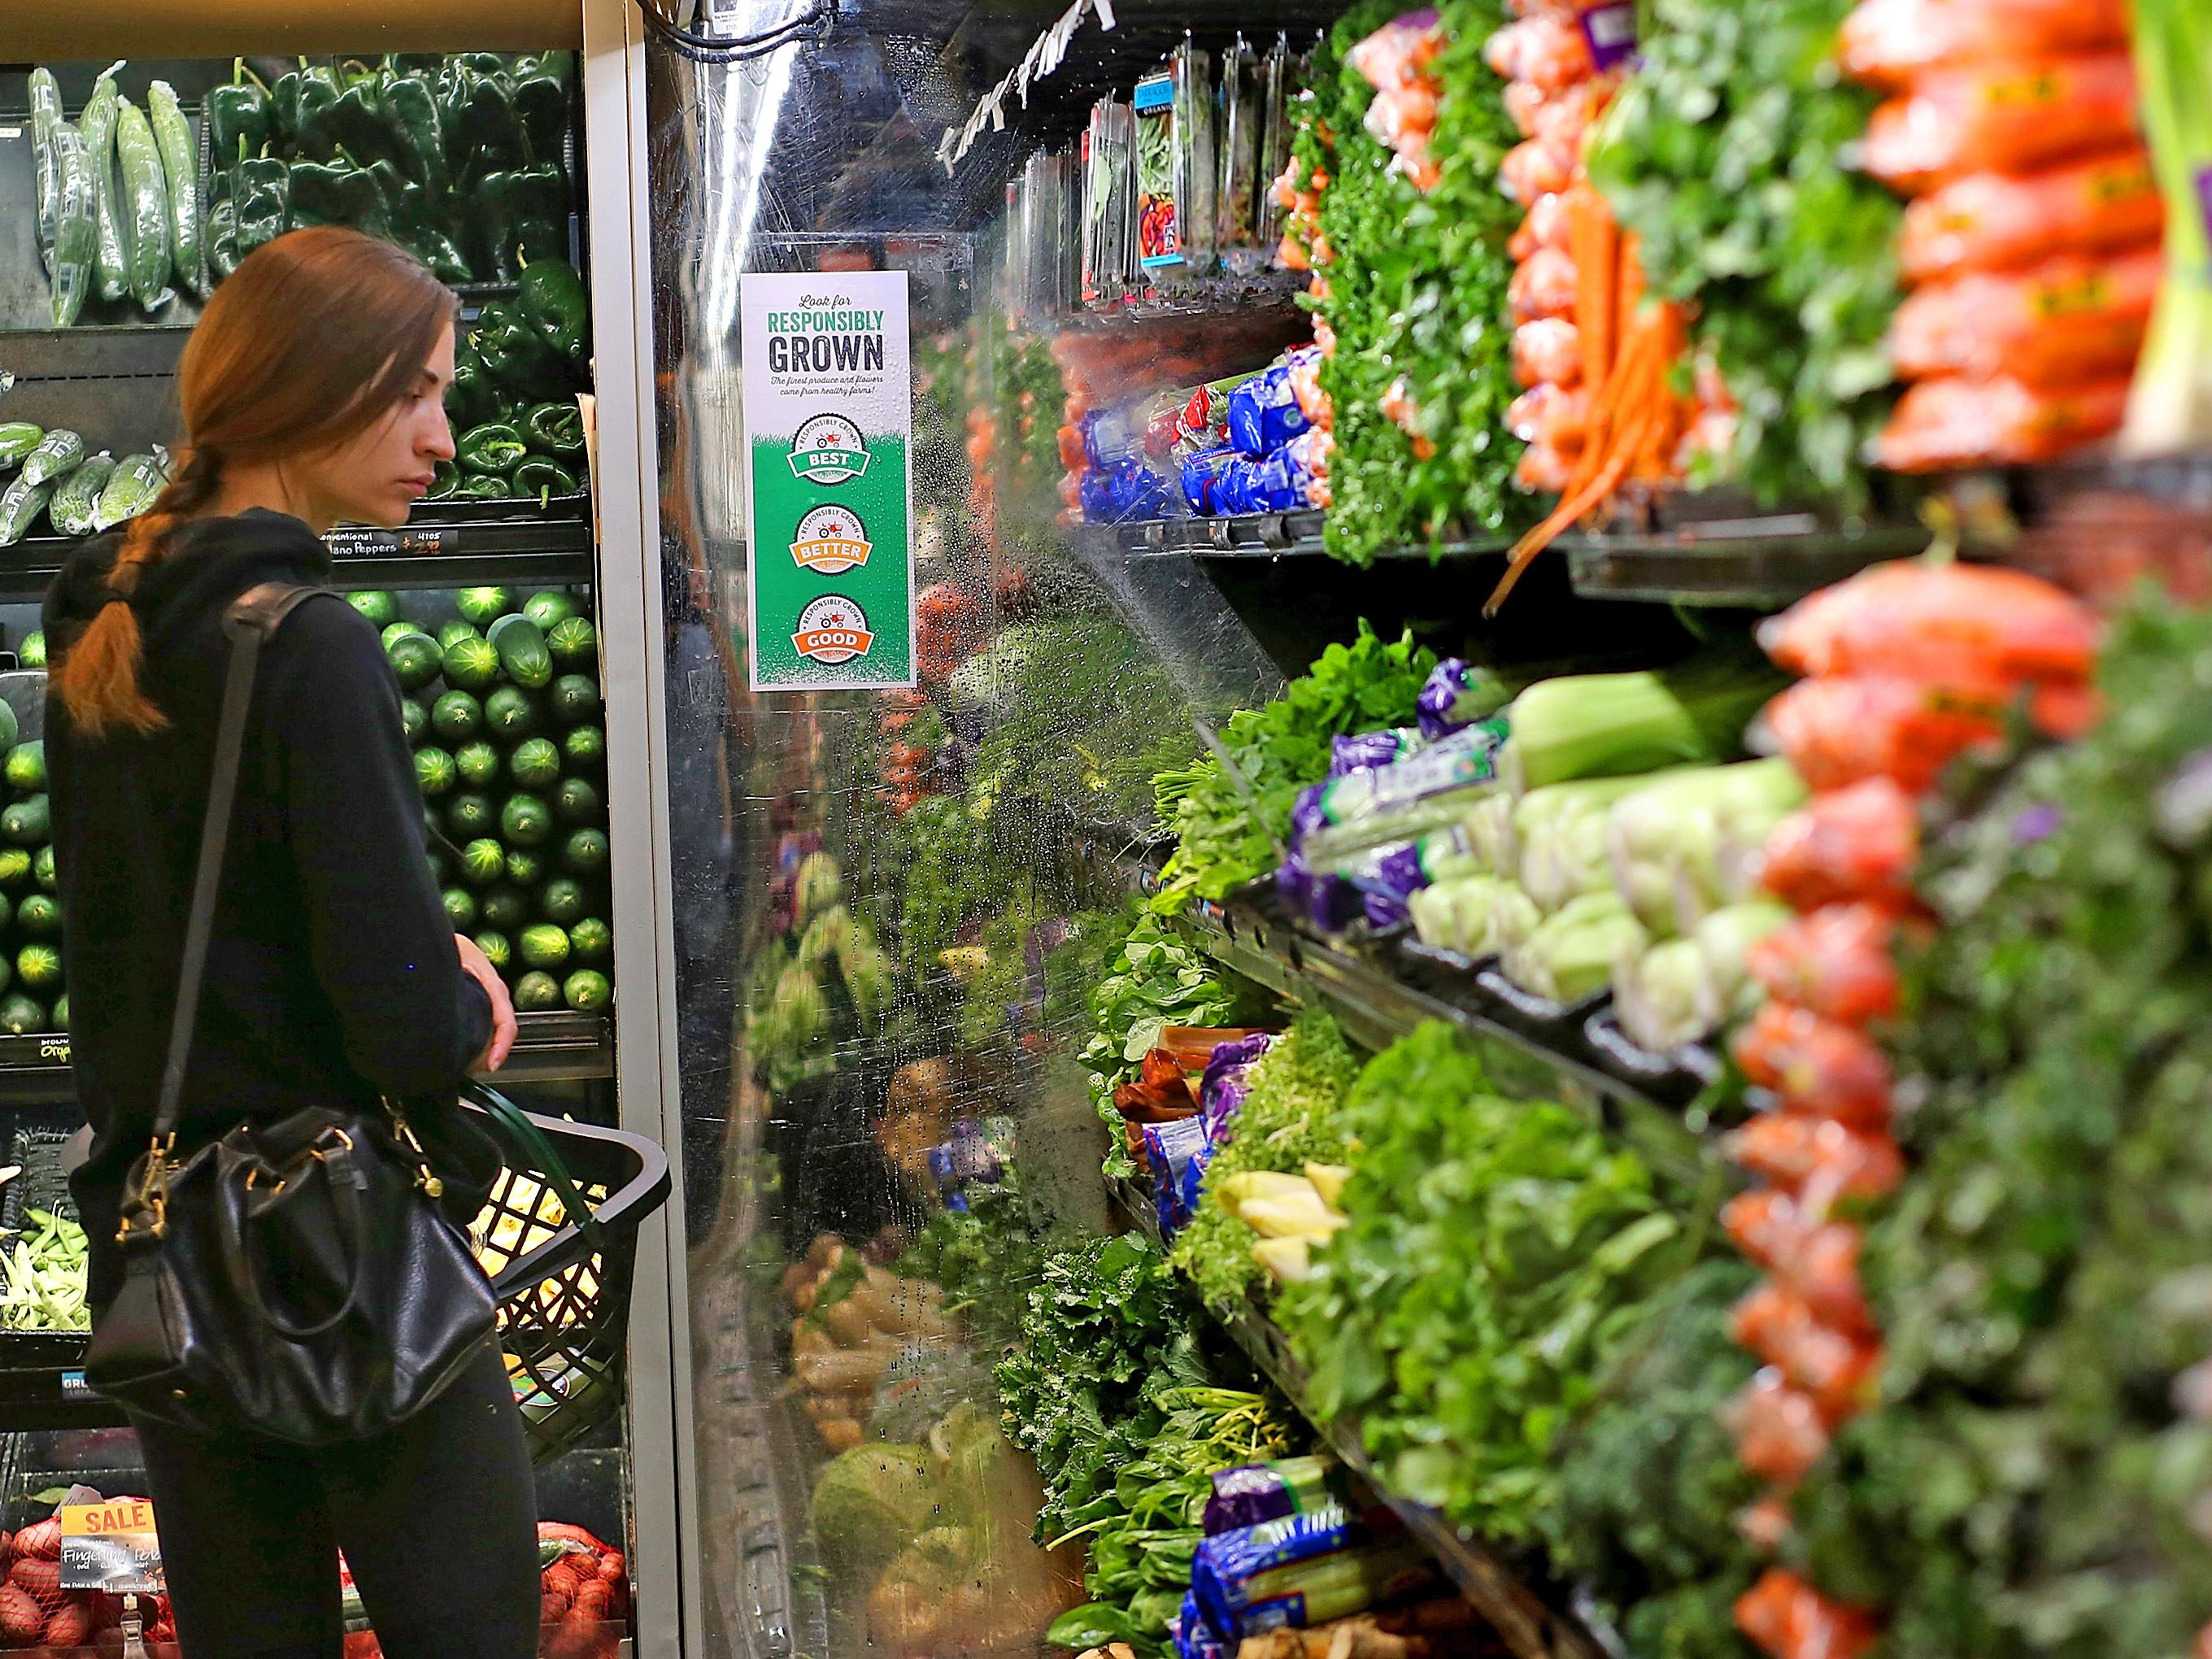 A woman who lived on $14,000 a year gives her top 2 tricks to cut your grocery bill in half